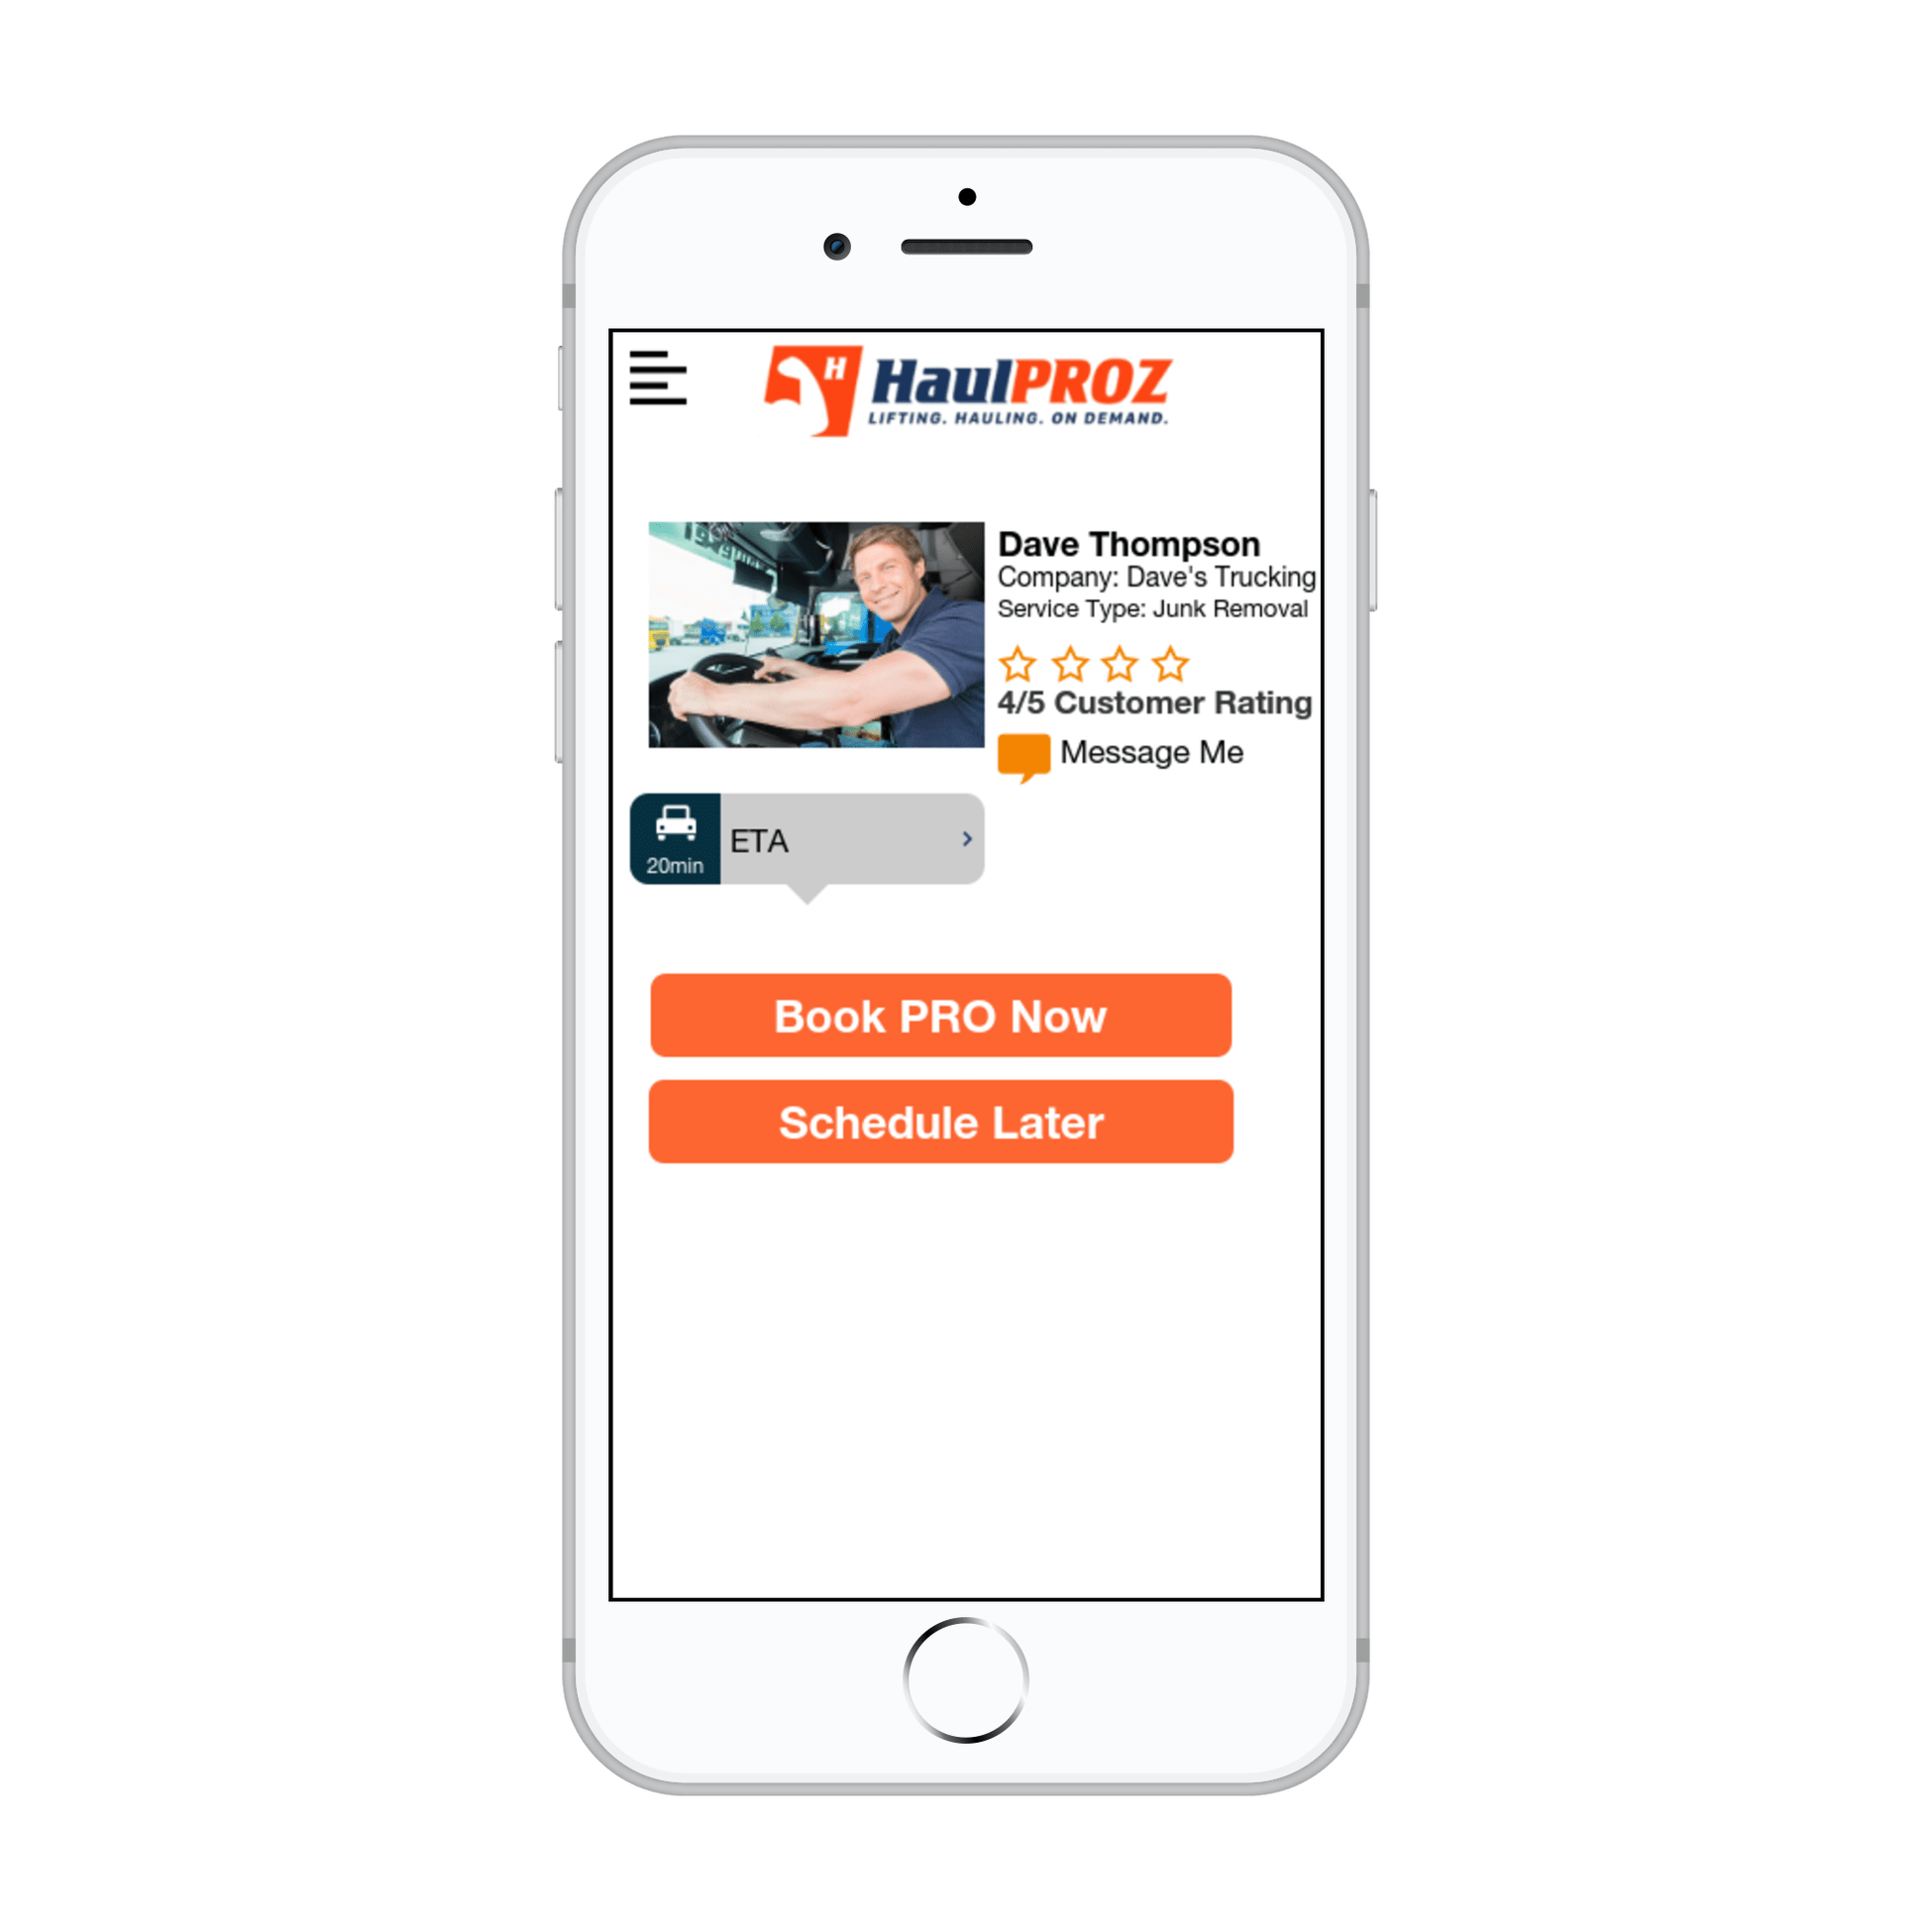 Mobile App of HaulPROZ driver, option to book a pro now or later